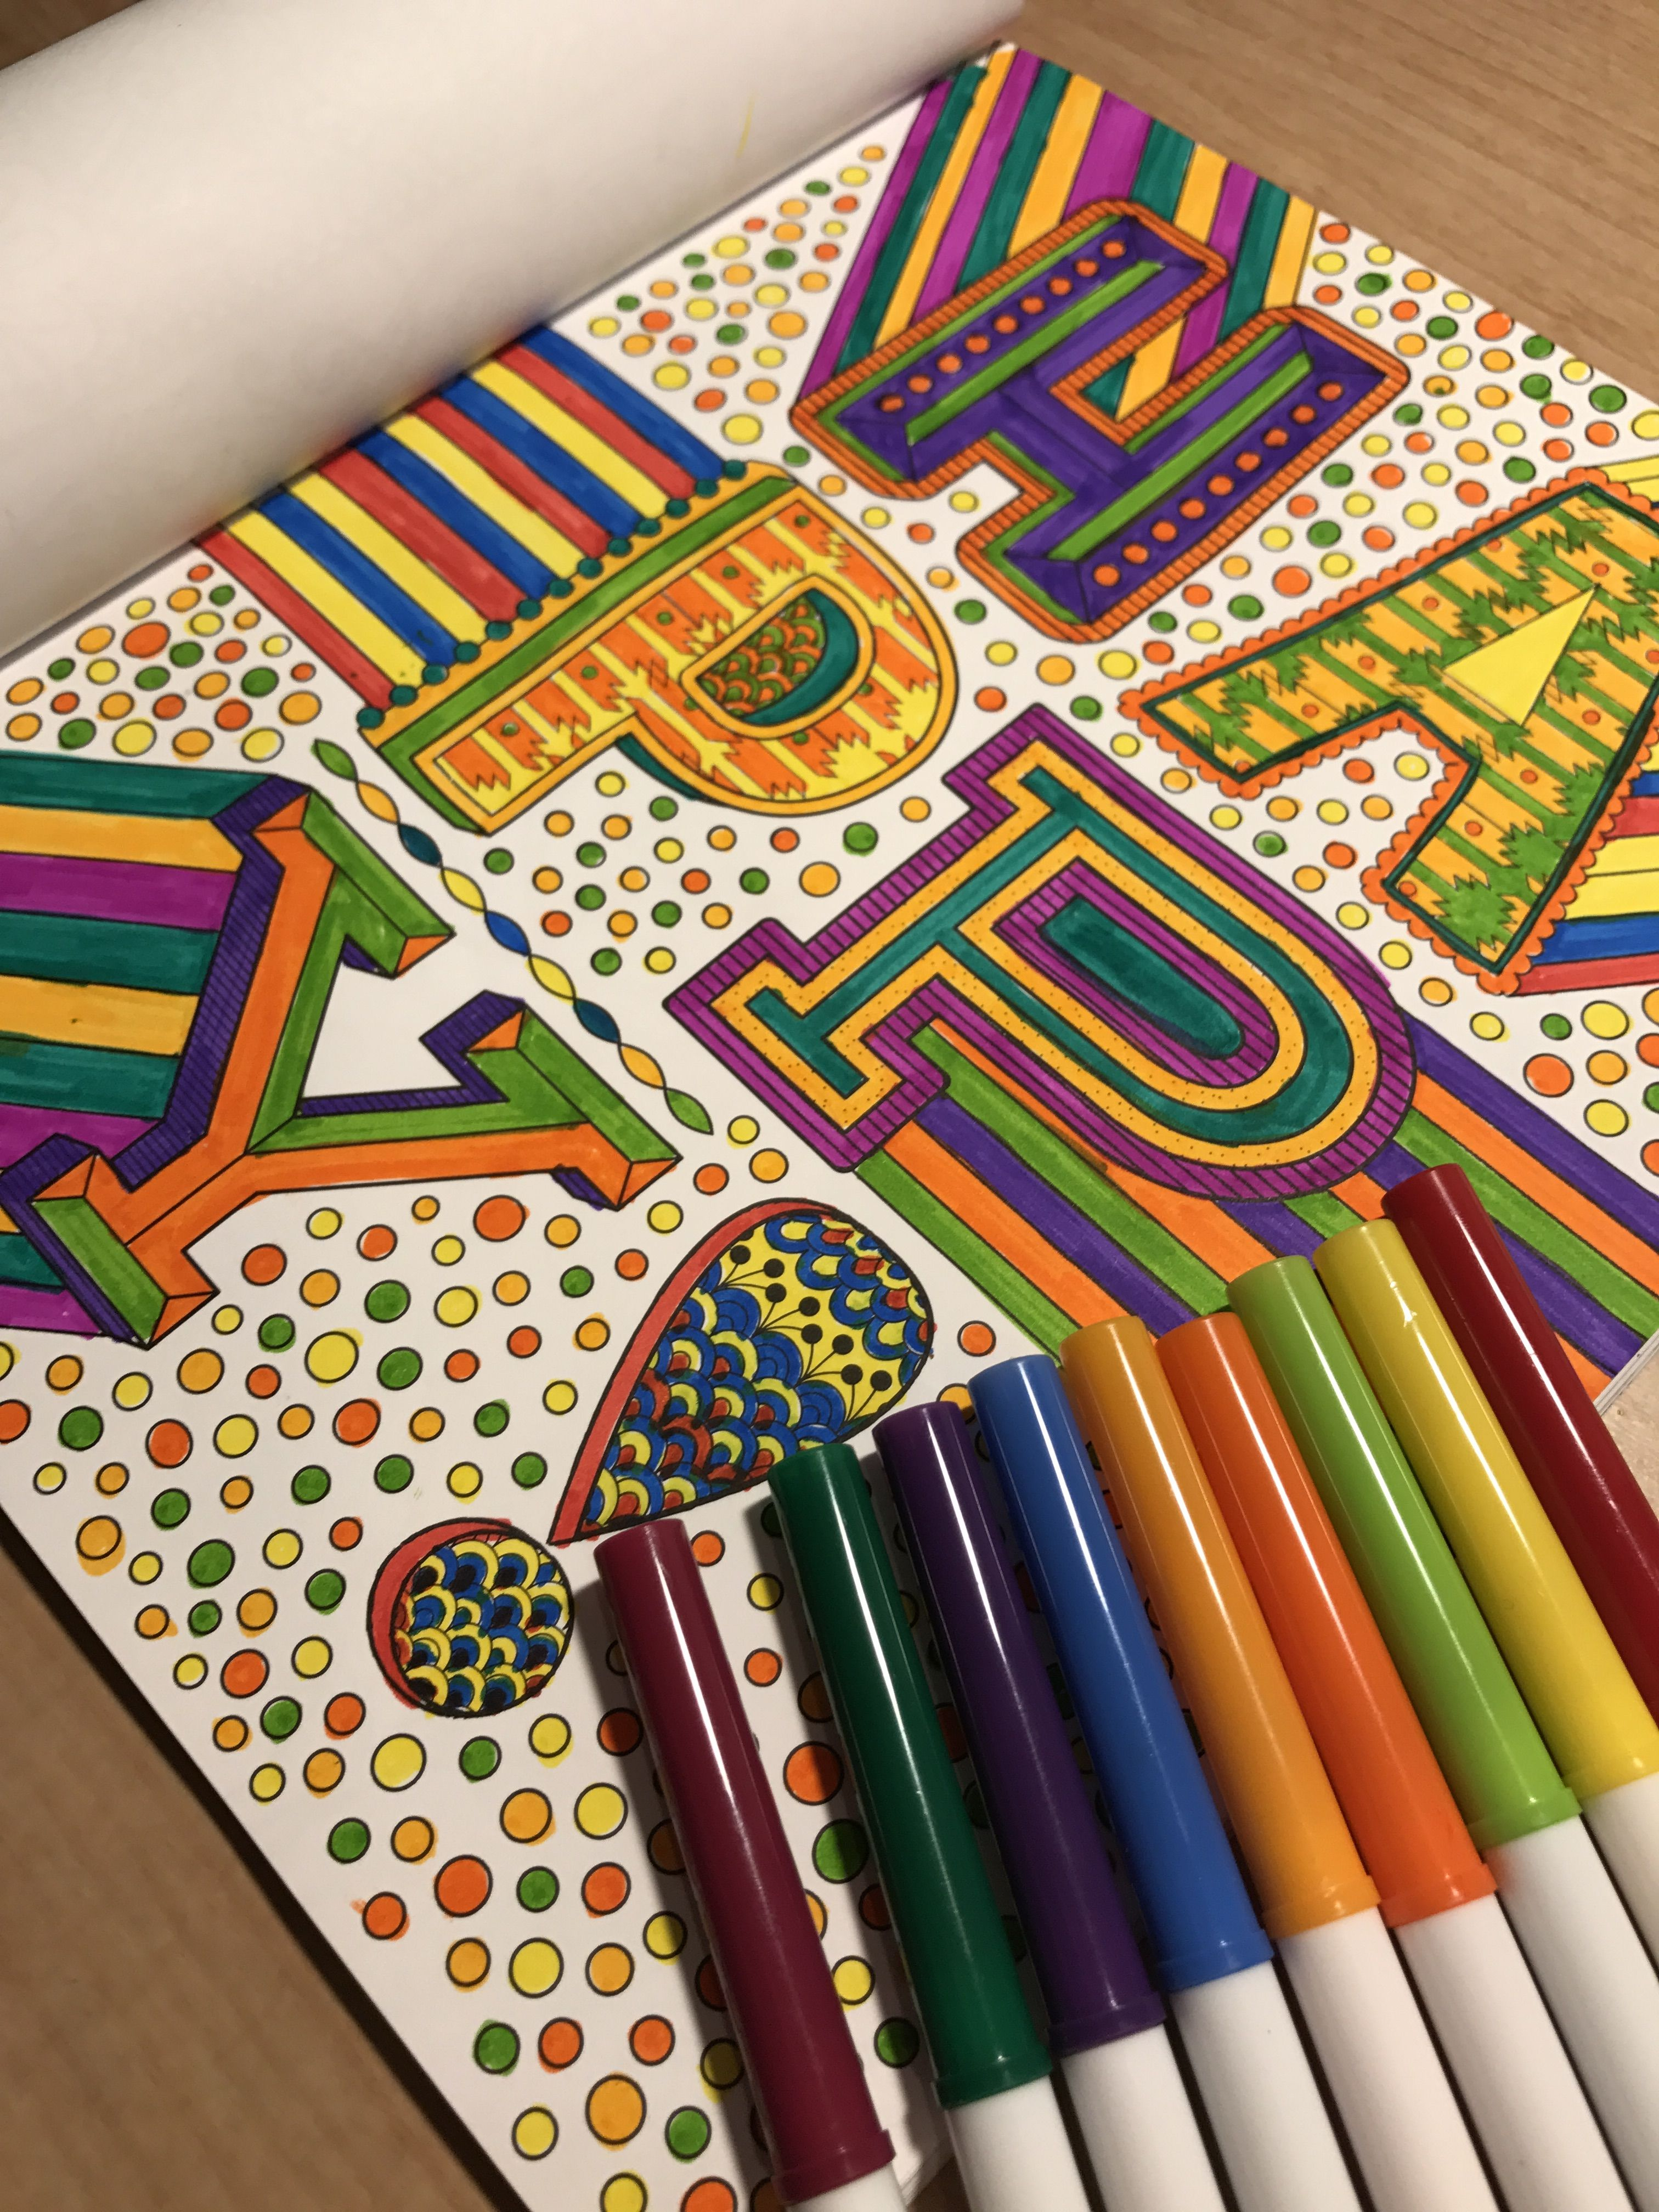 Adult Coloring Book Crayola Inspired Escapes Words And Letters By Hallmark